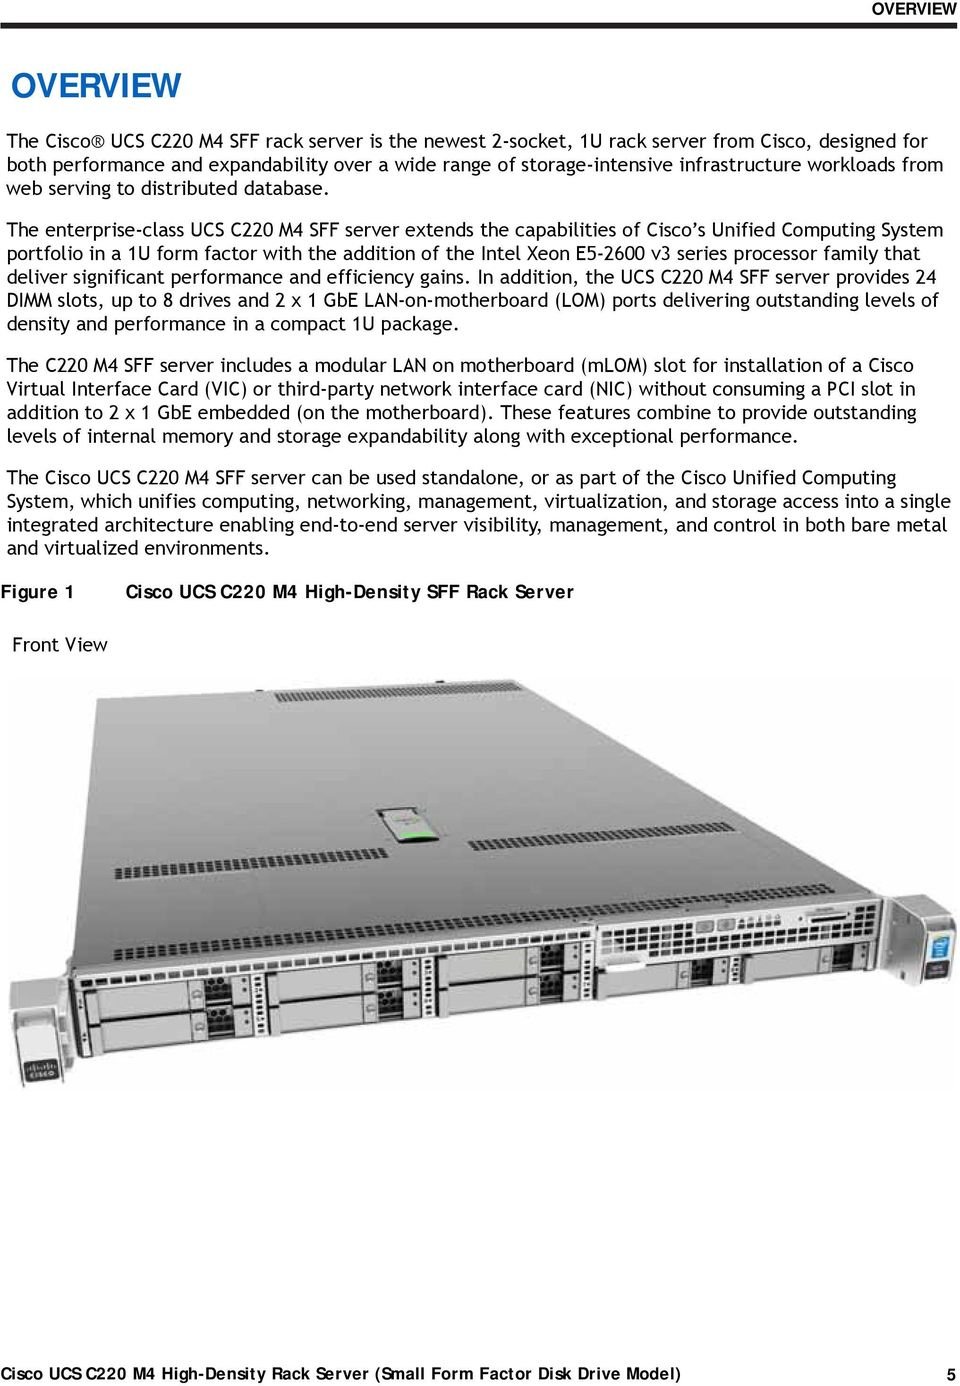 Cisco UCS C220 M4 High-Density Rack Server (Small Form